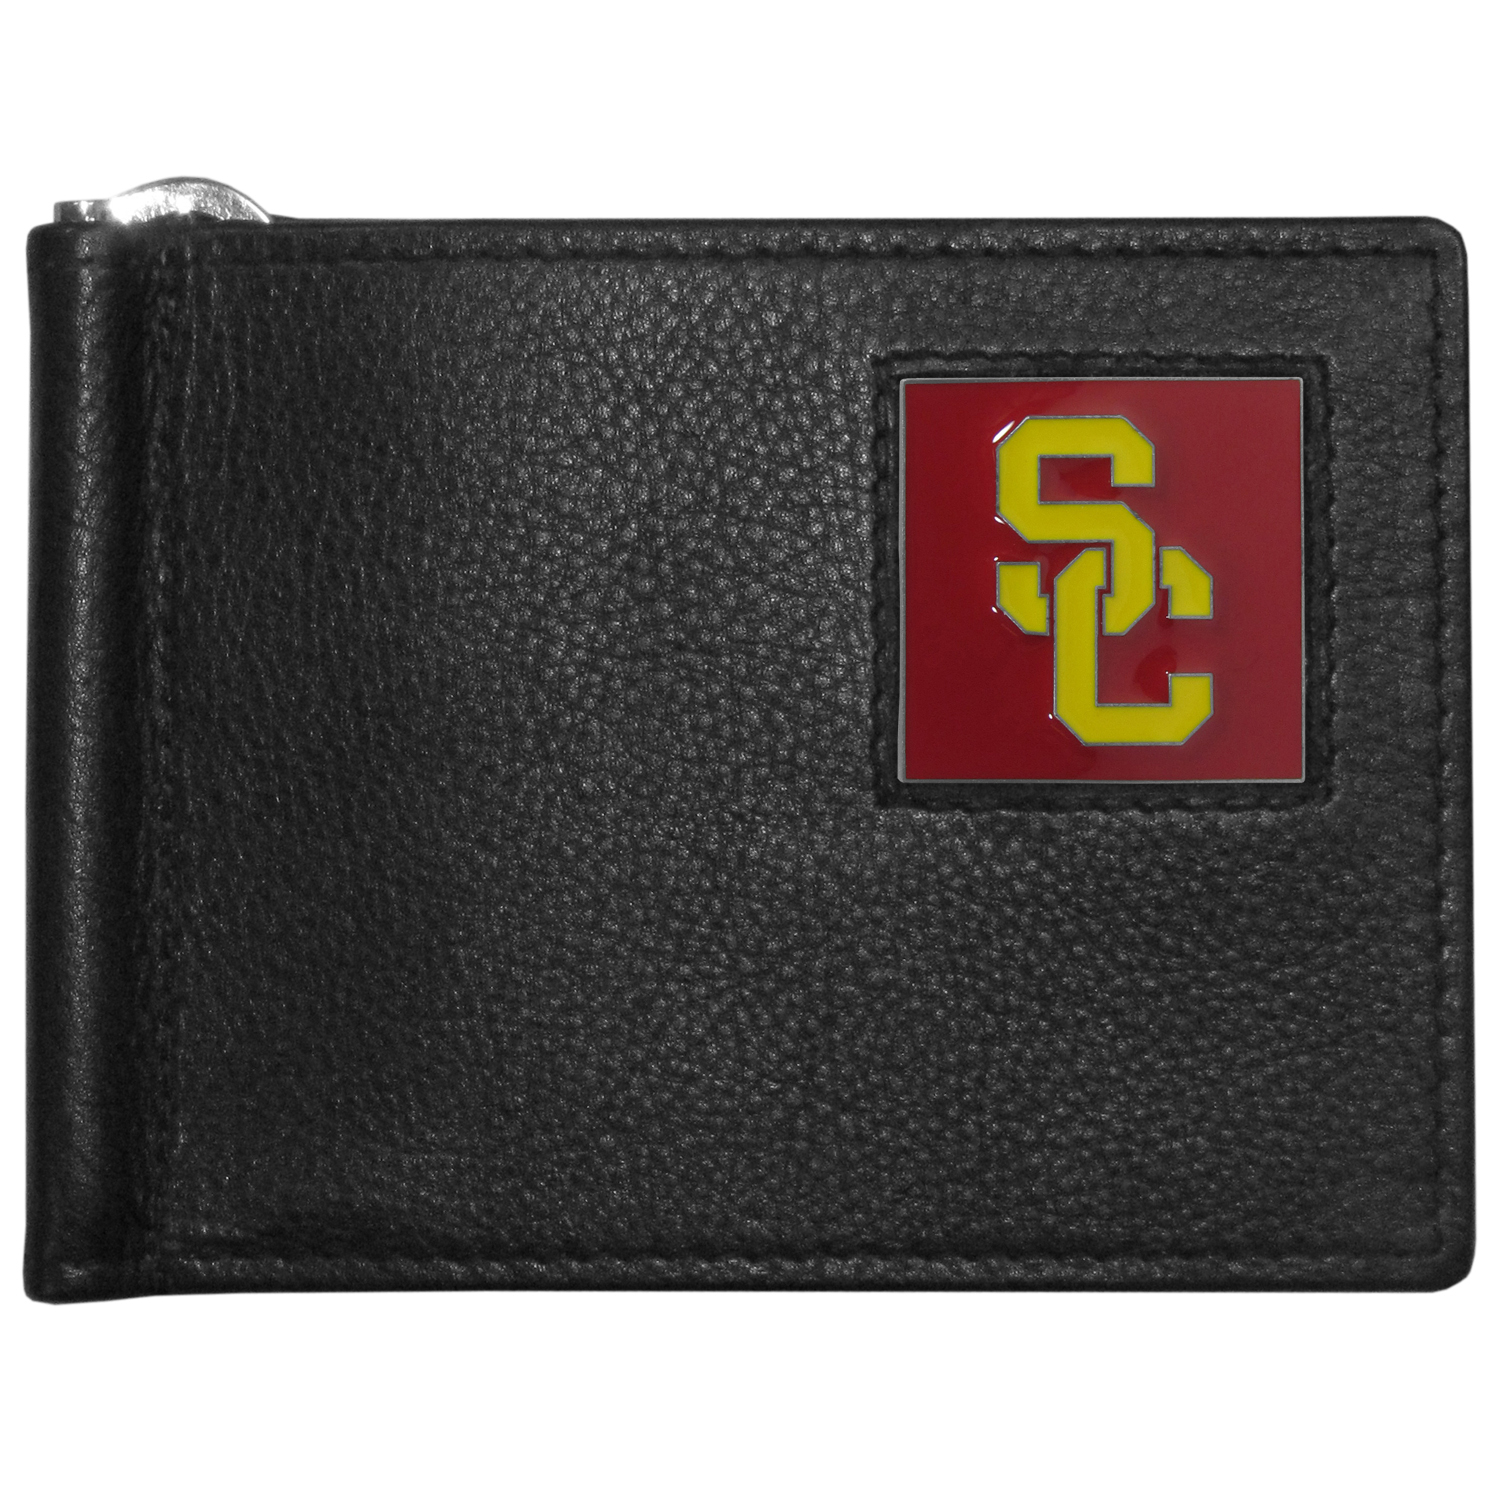 USC Trojans Leather Bill Clip Wallet - This cool new style wallet features an inner, metal bill clip that lips up for easy access. The super slim wallet holds tons of stuff with ample pockets, credit card slots & windowed ID slot. The wallet is made of genuine fine grain leather and it finished with a metal USC Trojans emblem. The wallet is shipped in gift box packaging.